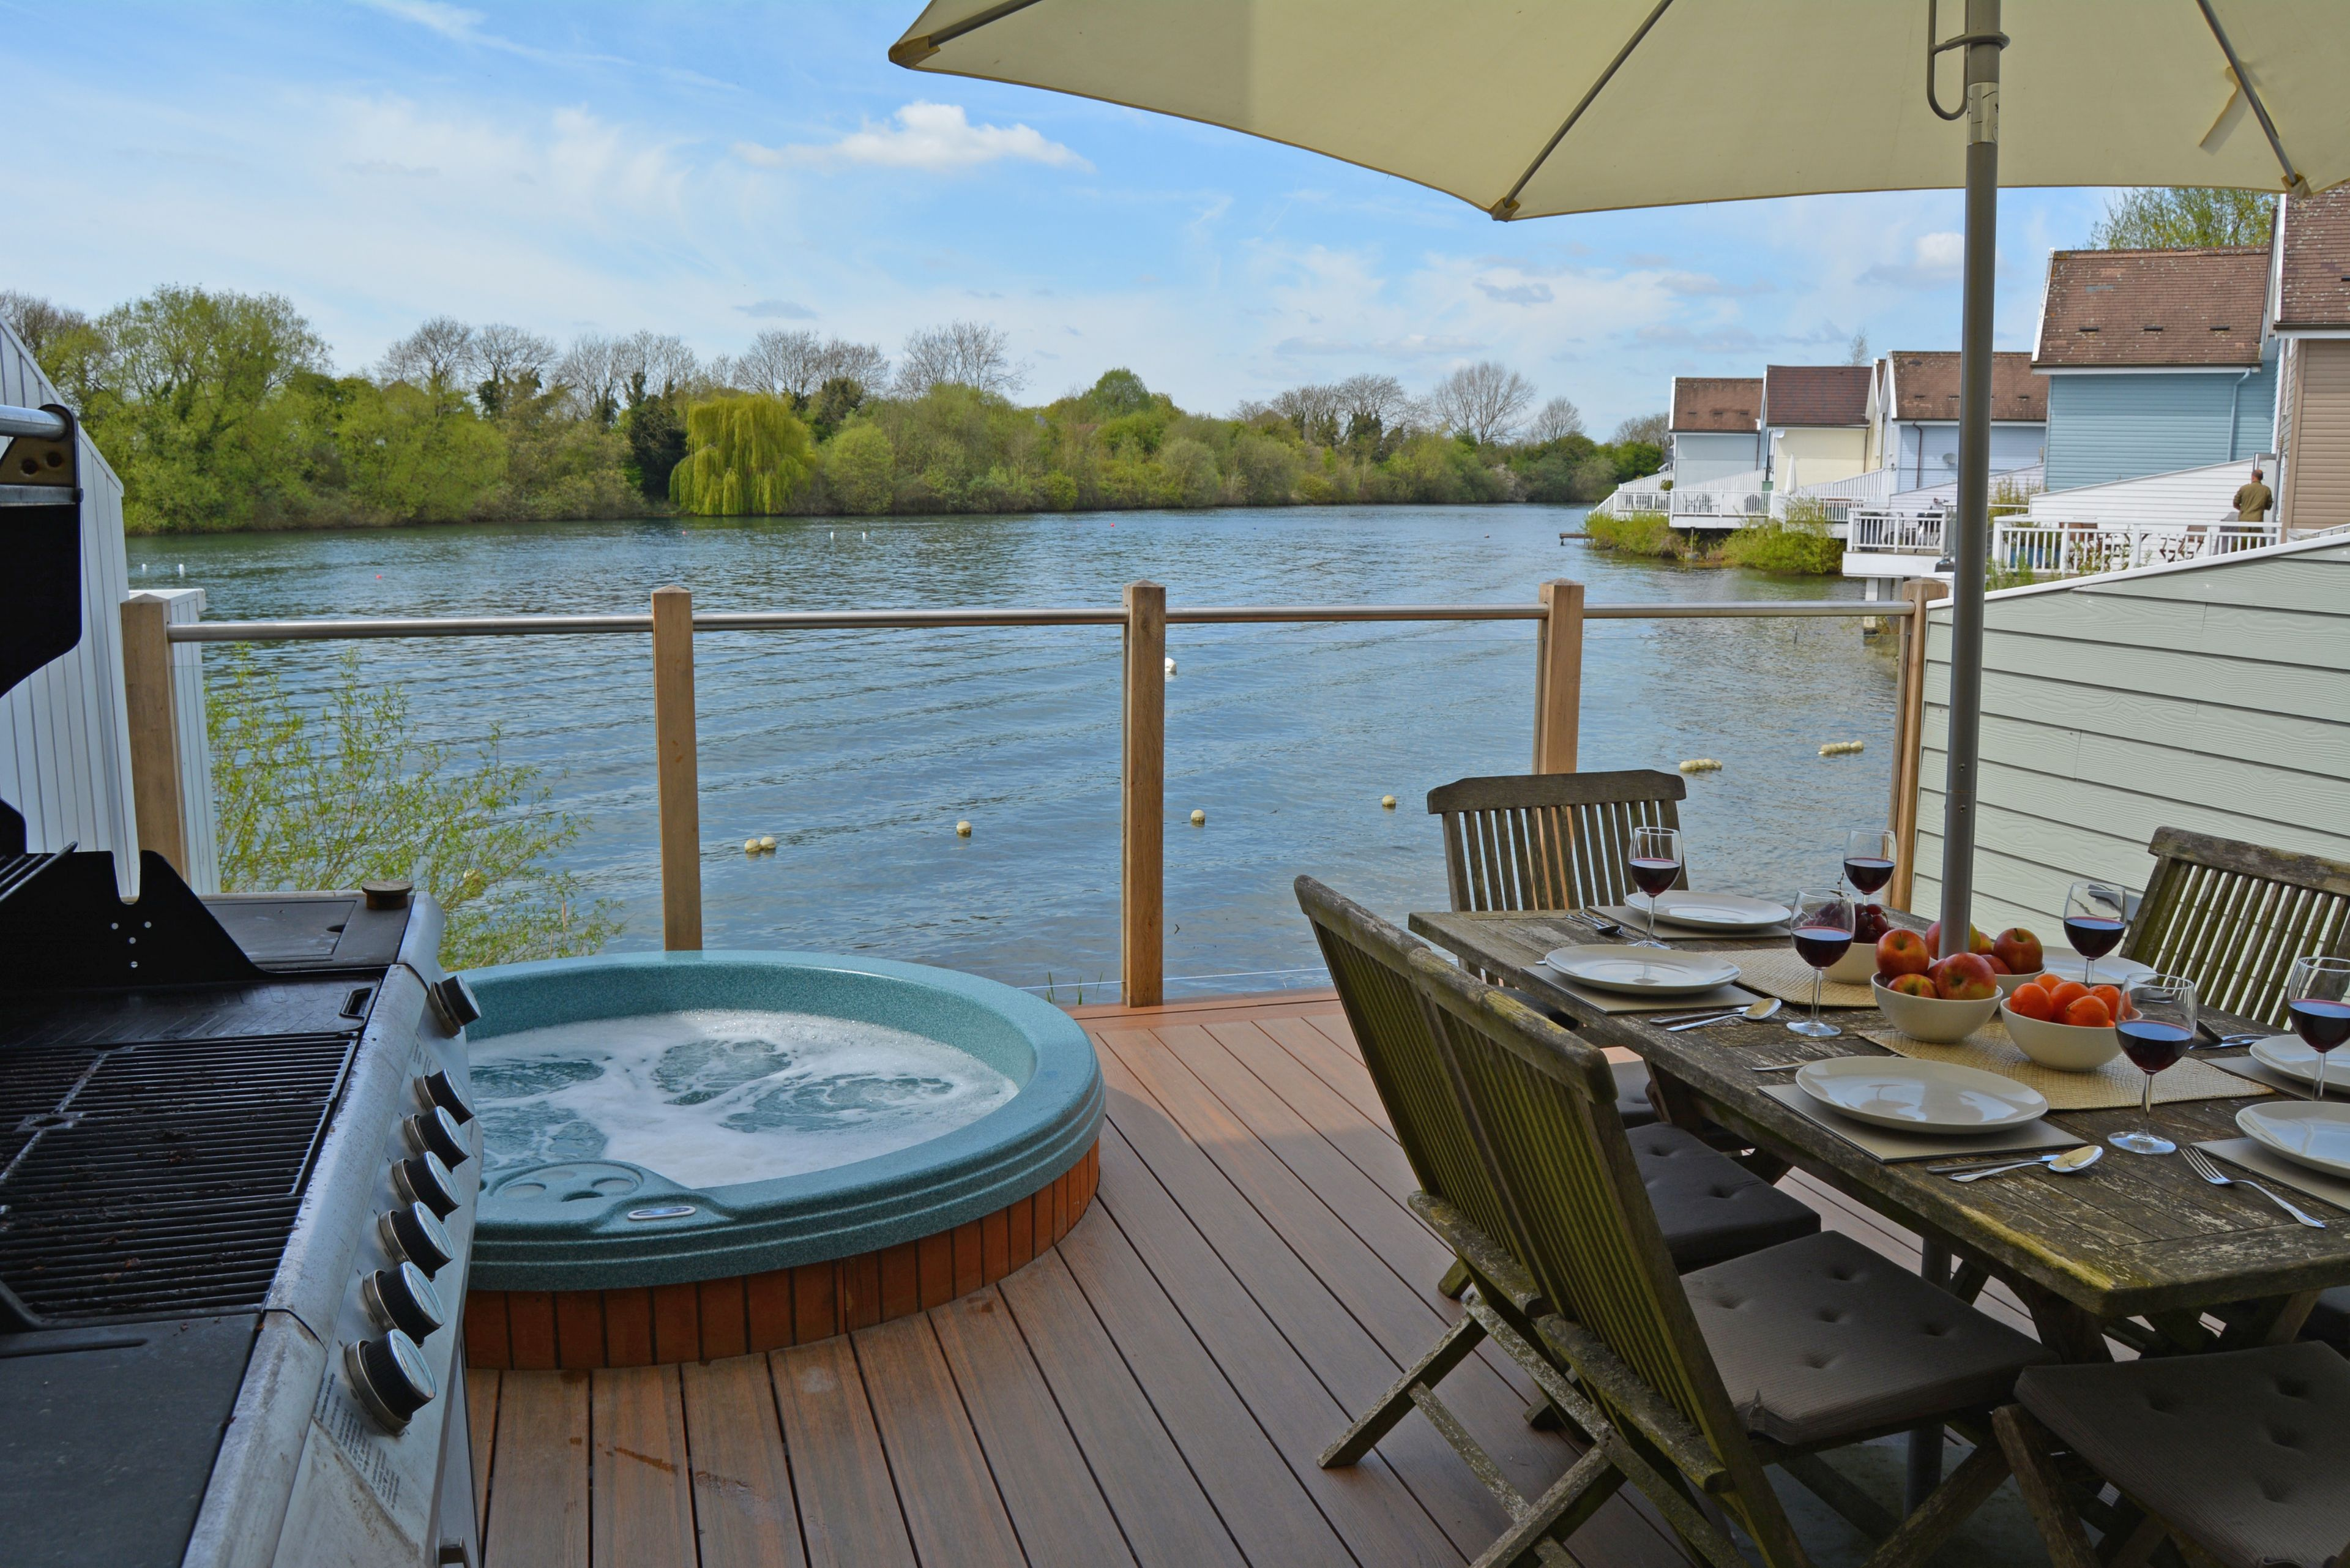 The hot tub on the secure lake deck makes the perfect place to watch the world go by